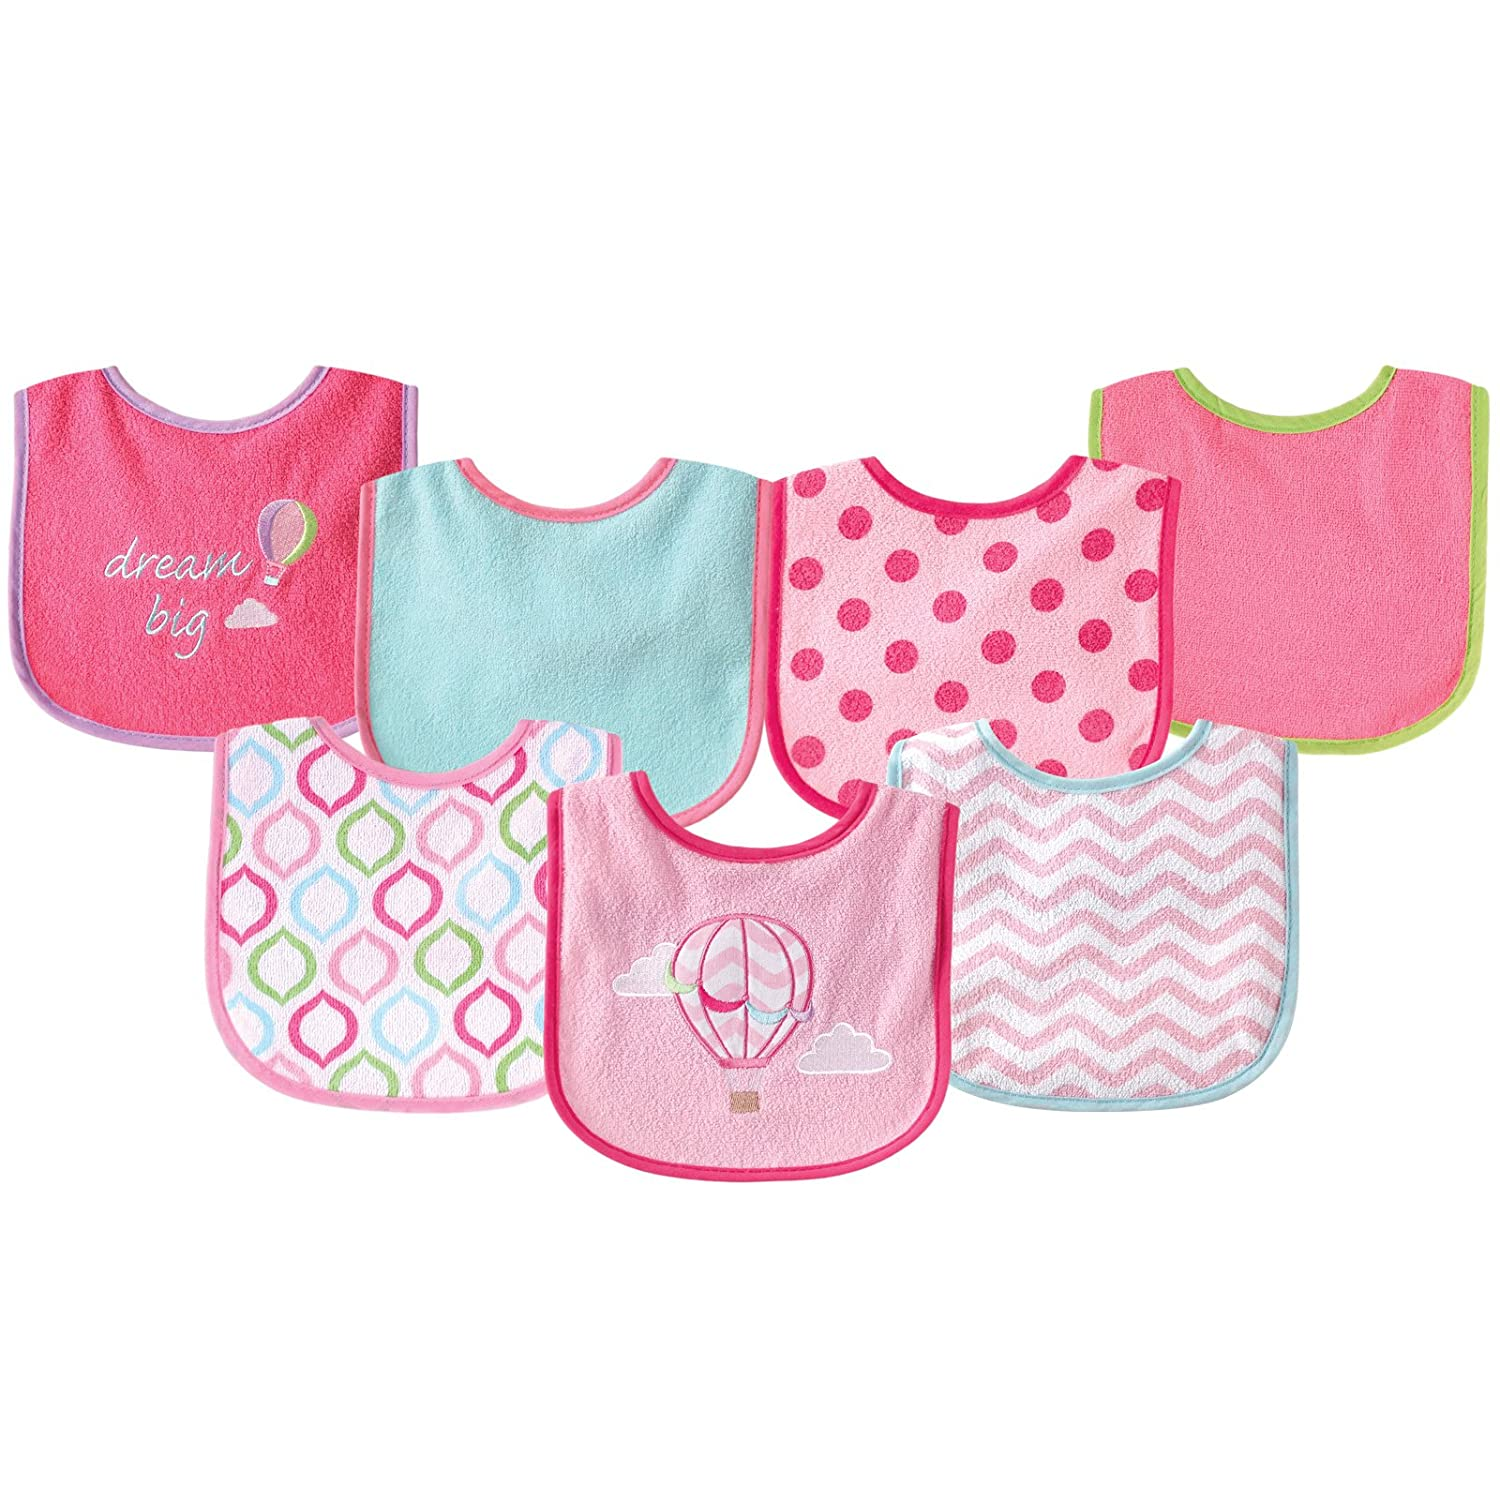 Luvable Friends 7 Piece Drooler Bibs with Waterproof Backing, Blue Spaceship BabyVision 02199_Blue